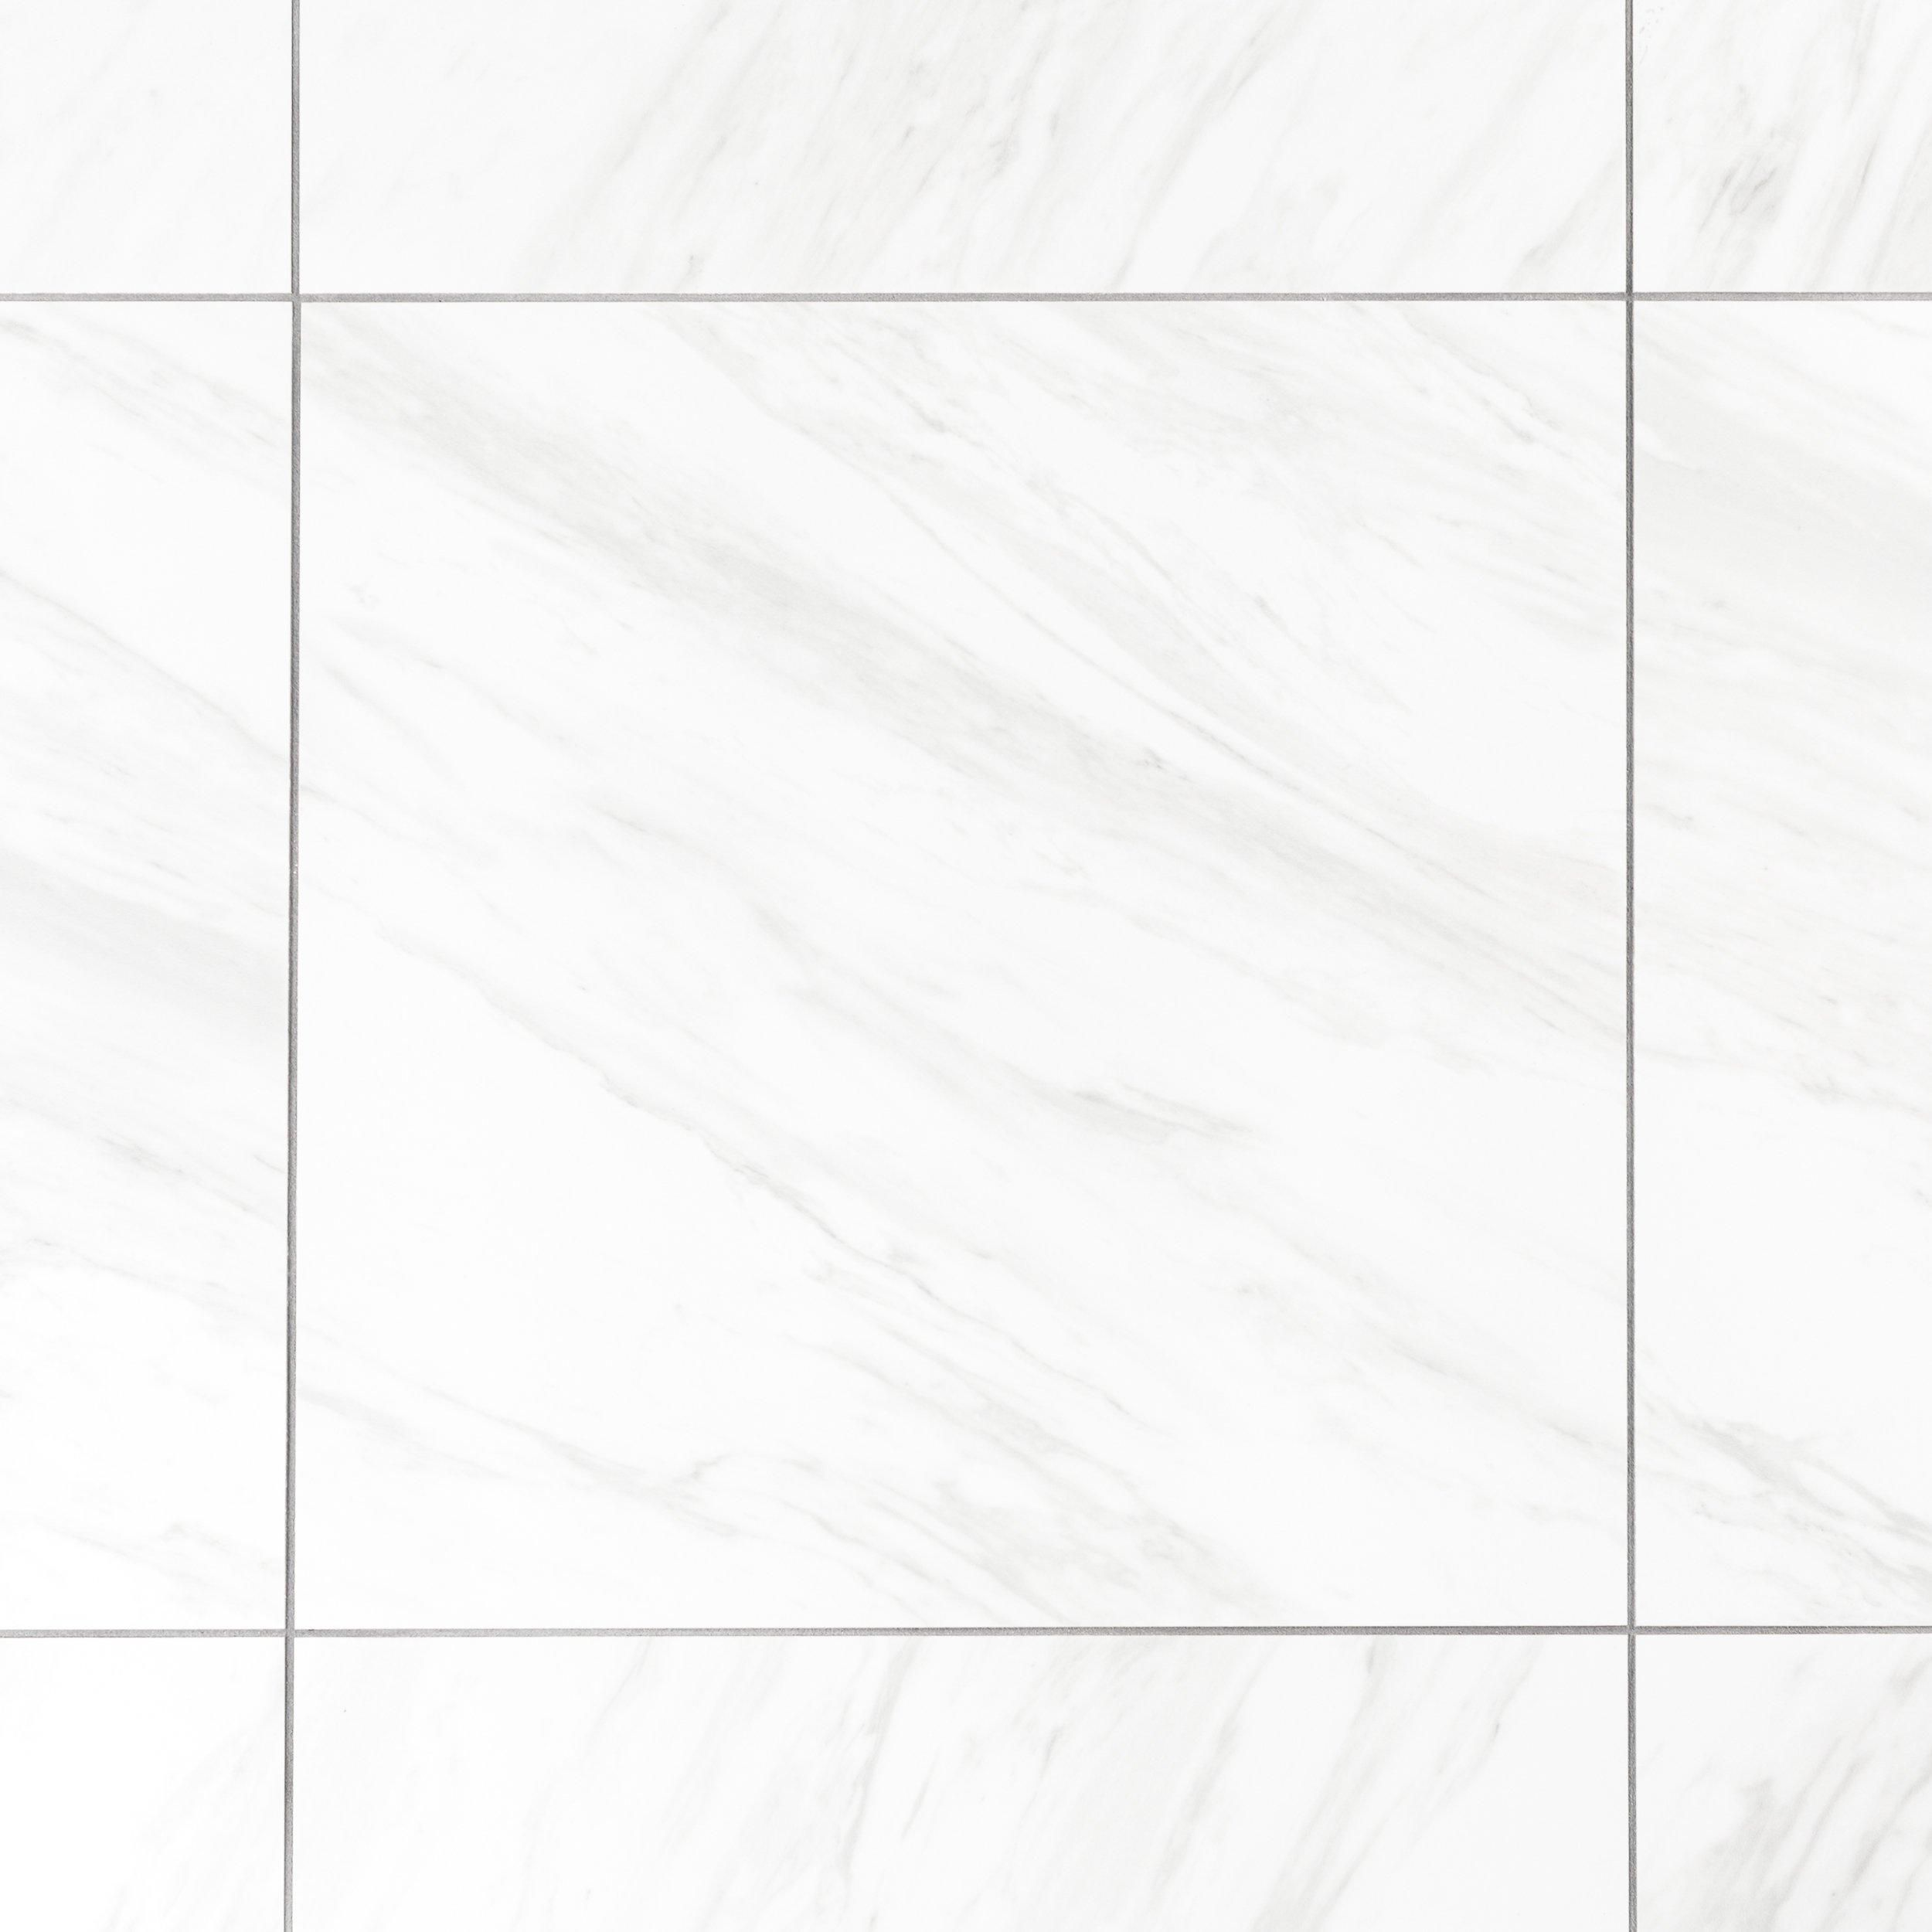 The Easiest Way To Clean Filthy Neglected Tile Flooring Tile Floor Diy Cleaning Tile Floors Clean Tile